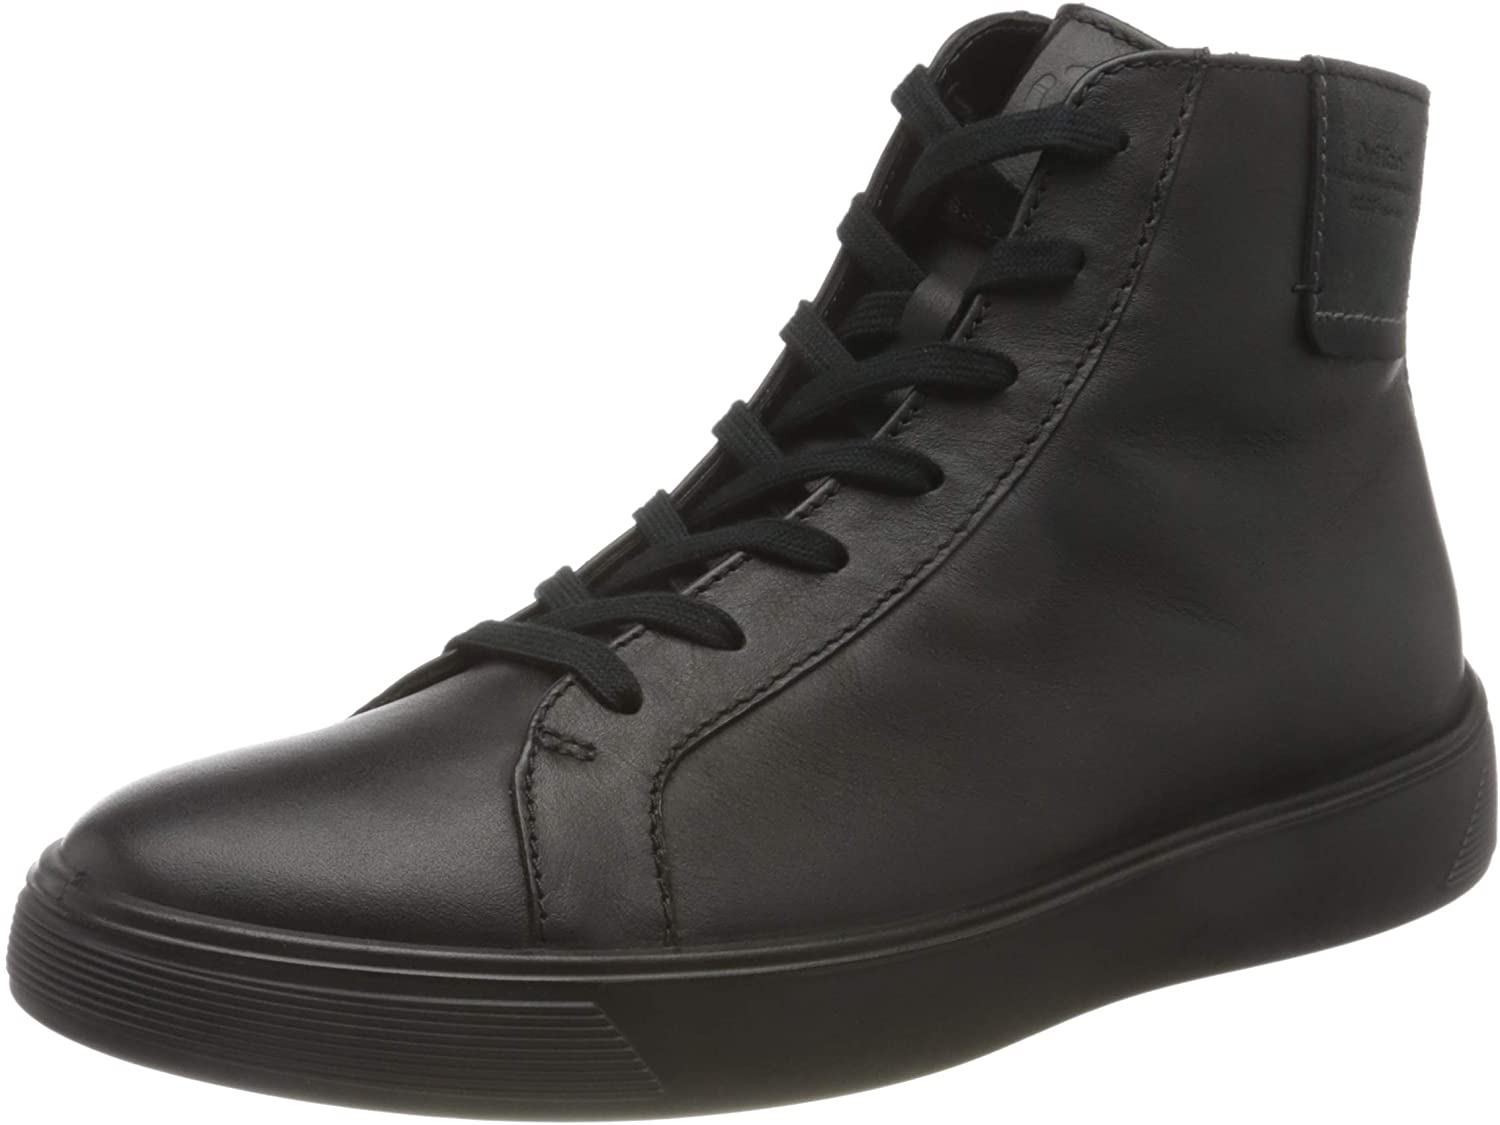 ECCO Men's Street Tray Classic High Top Sneaker